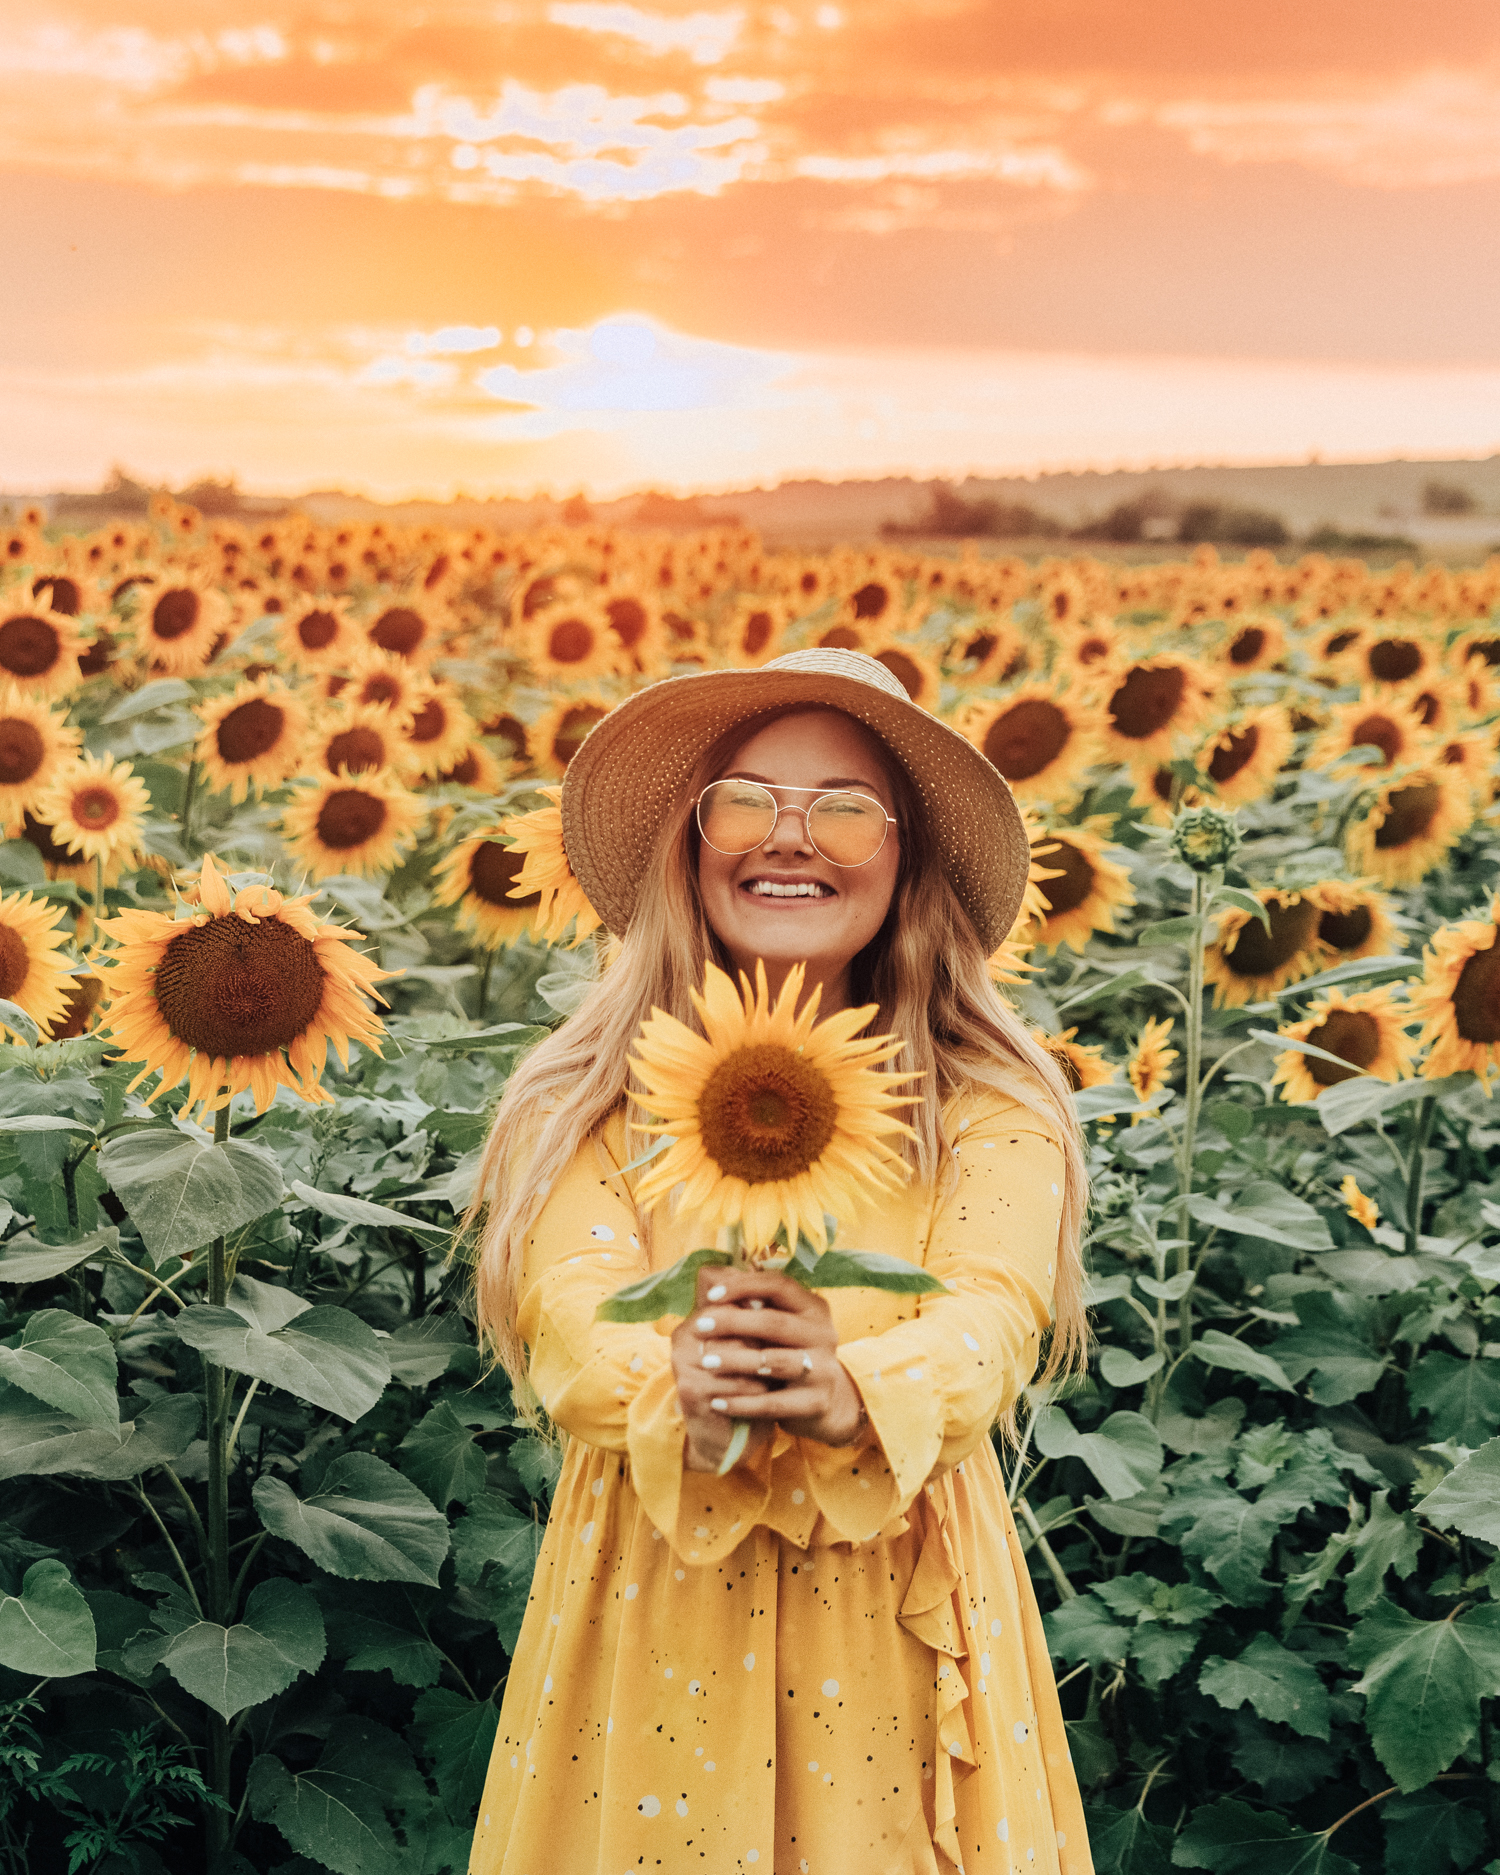 Ida Josefin Eriksson standing in a sunflower field in sunset in Slavonia, Croatia